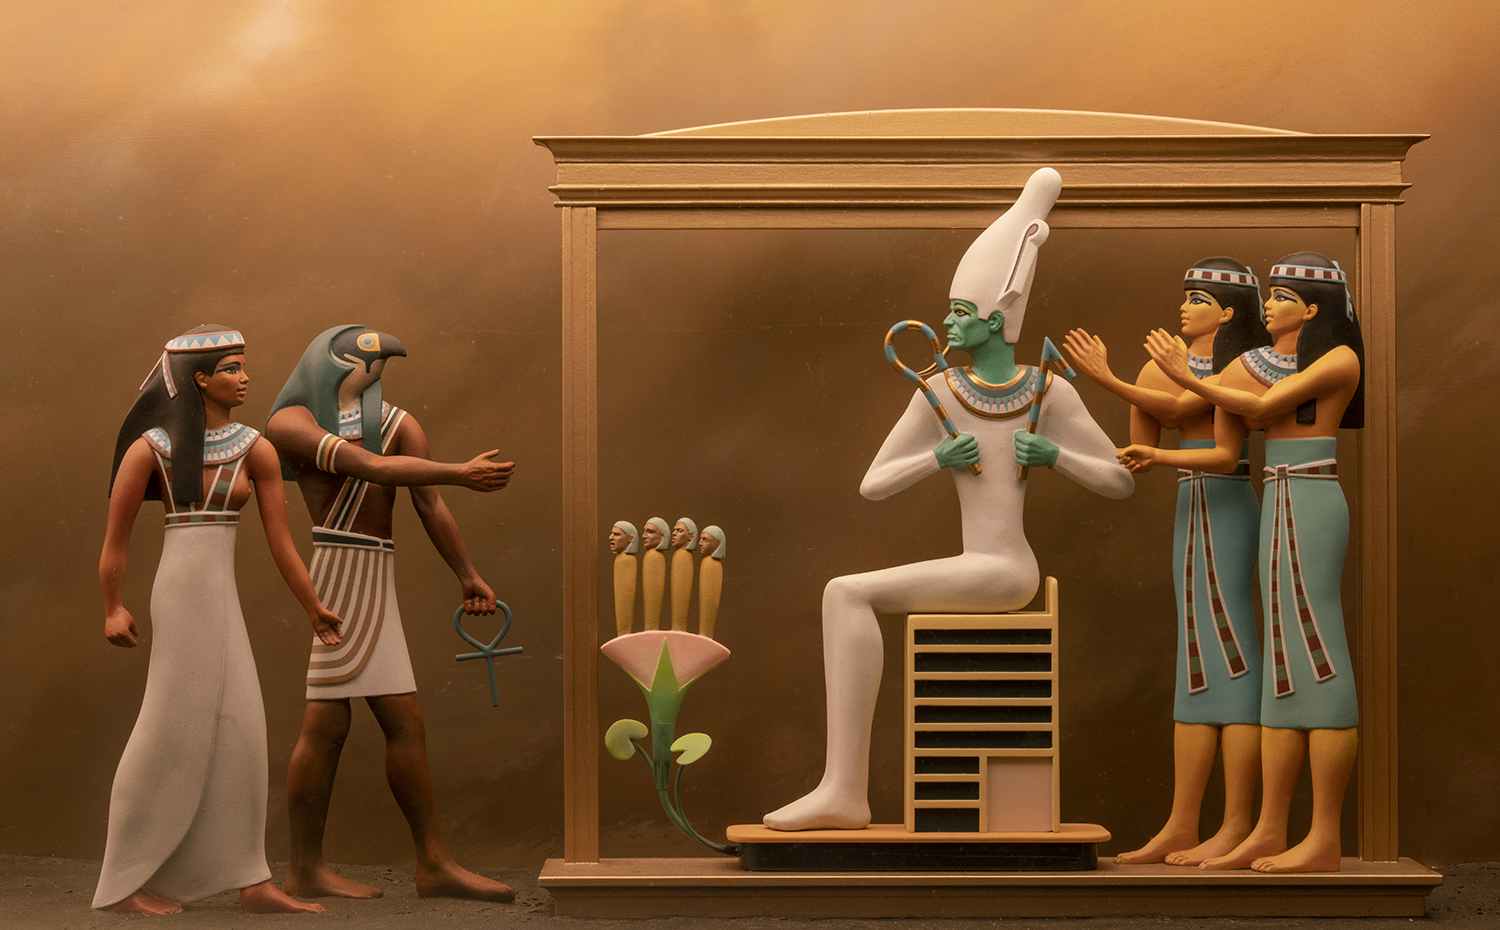 Figure 29: In this scene from a diorama on exhibit in the Egyptian Gallery at Glencairn, the deceased, a woman named Isty, is shown being ushered in before Osiris after passing successfully into the afterlife. This diorama is based on a  Book of the Dead  funerary papyrus now in the collection of the Field Museum in Chicago.